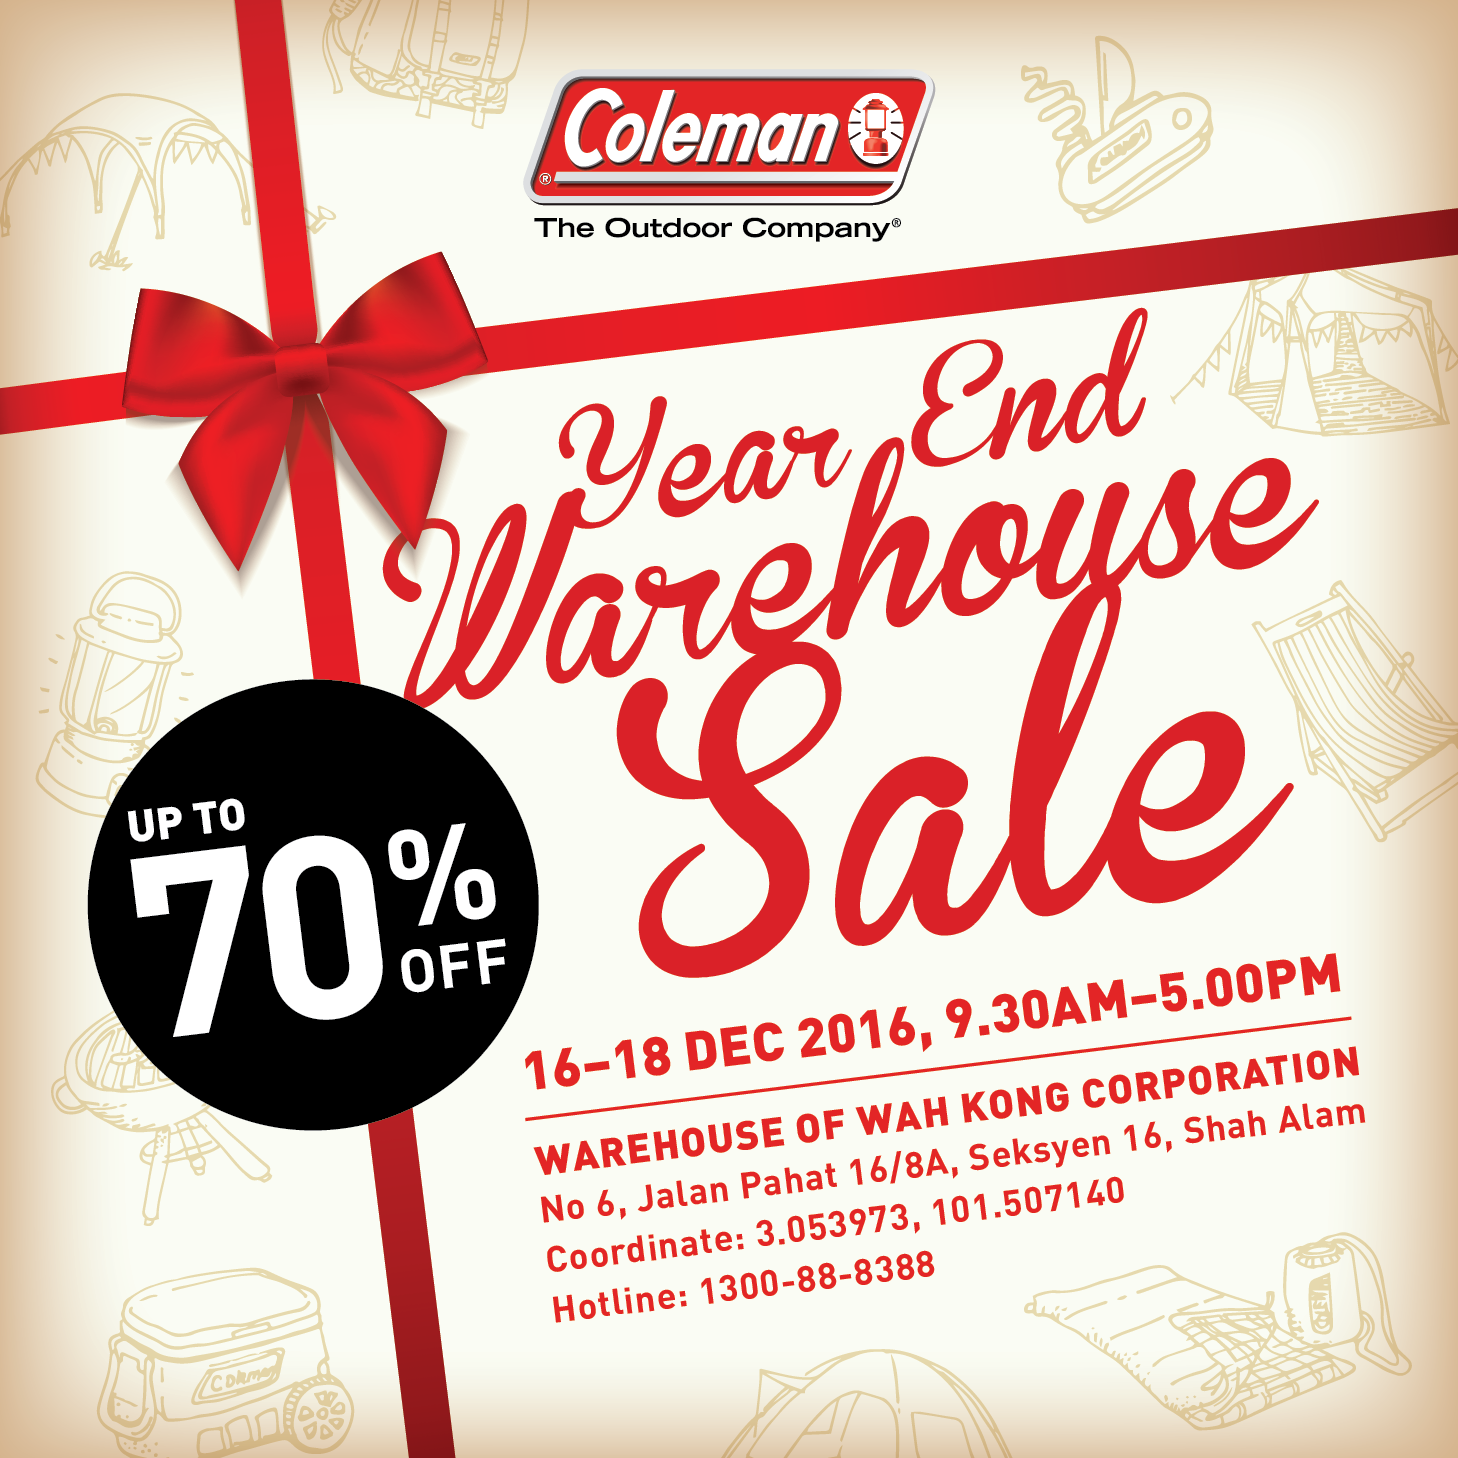 malaysia-warehouse-sale-year-end-coleman